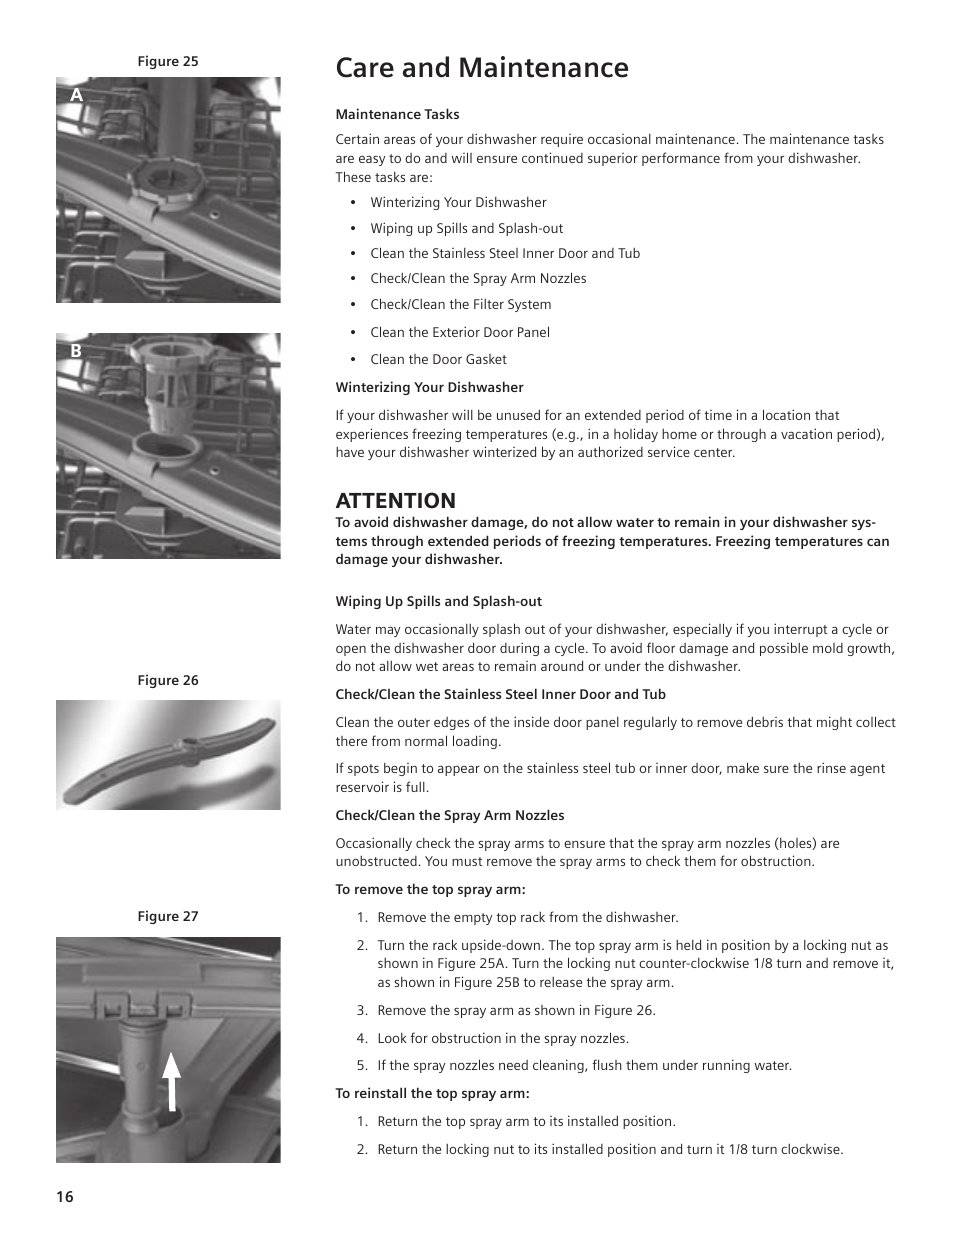 Care and maintenance, Attention | Bosch SHE44C User Manual | Page 16 / 22